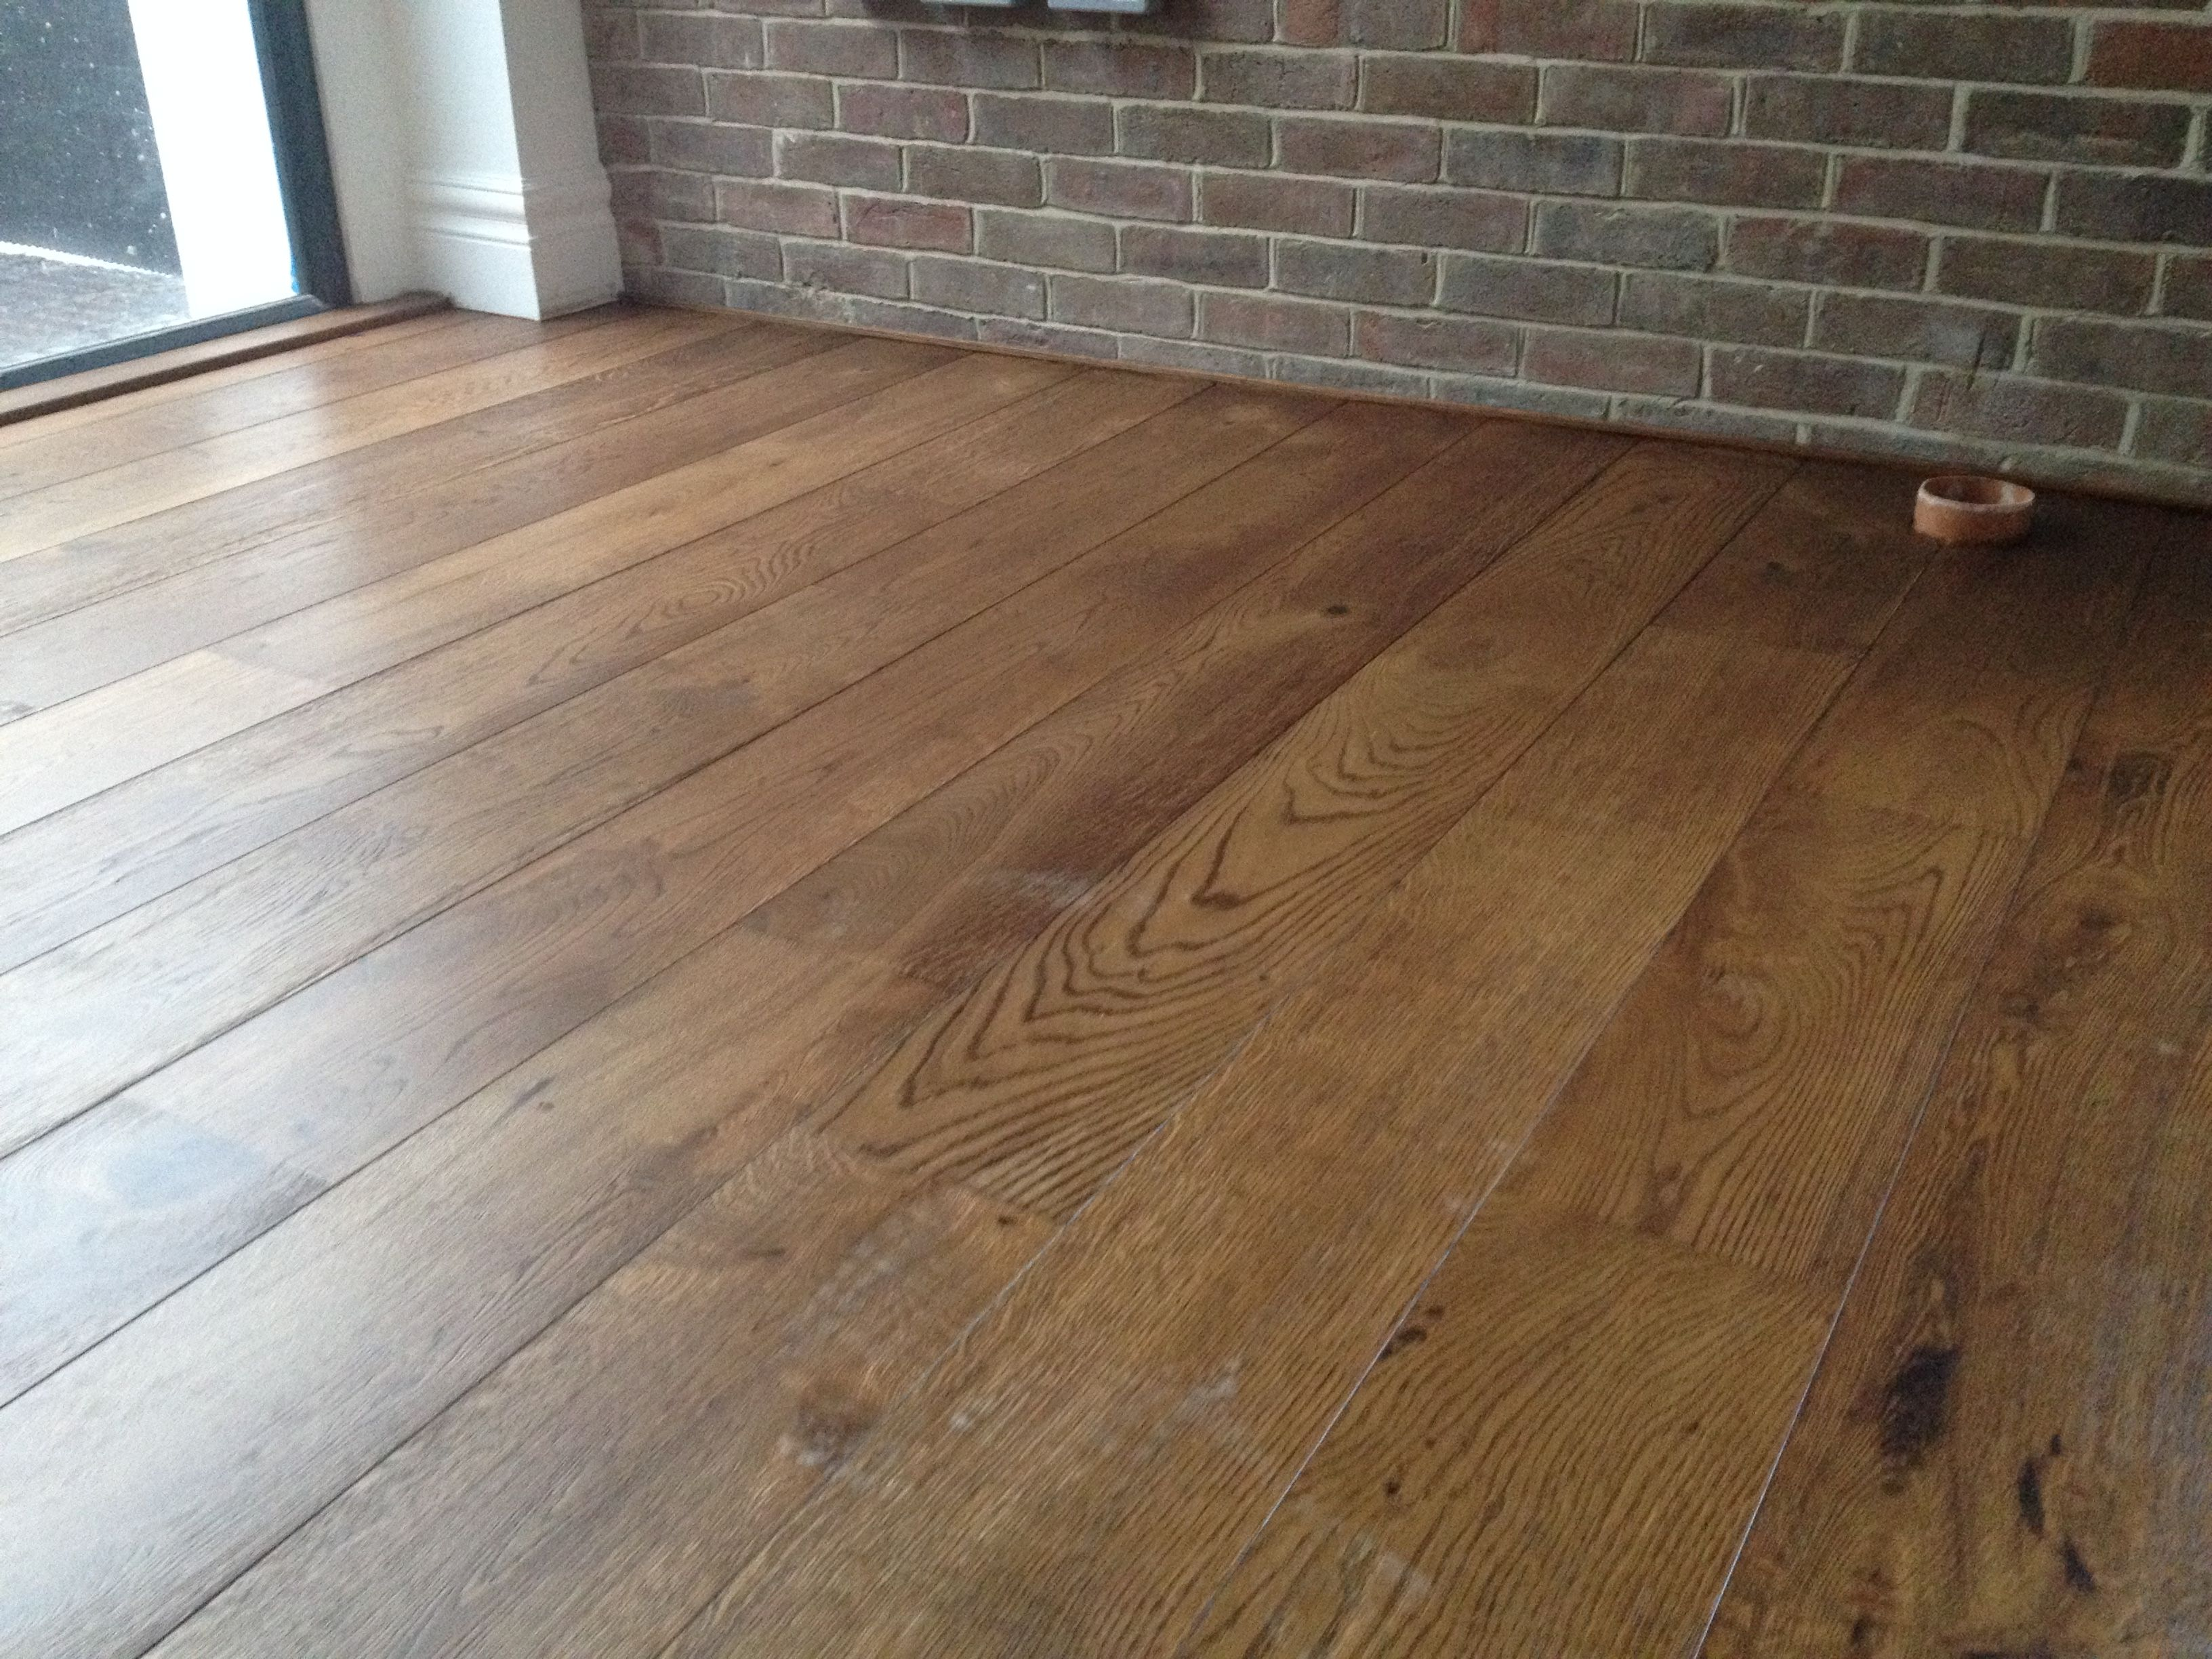 Unfinished Brushed Oak Engineered Wood Flooring Stained Dark And